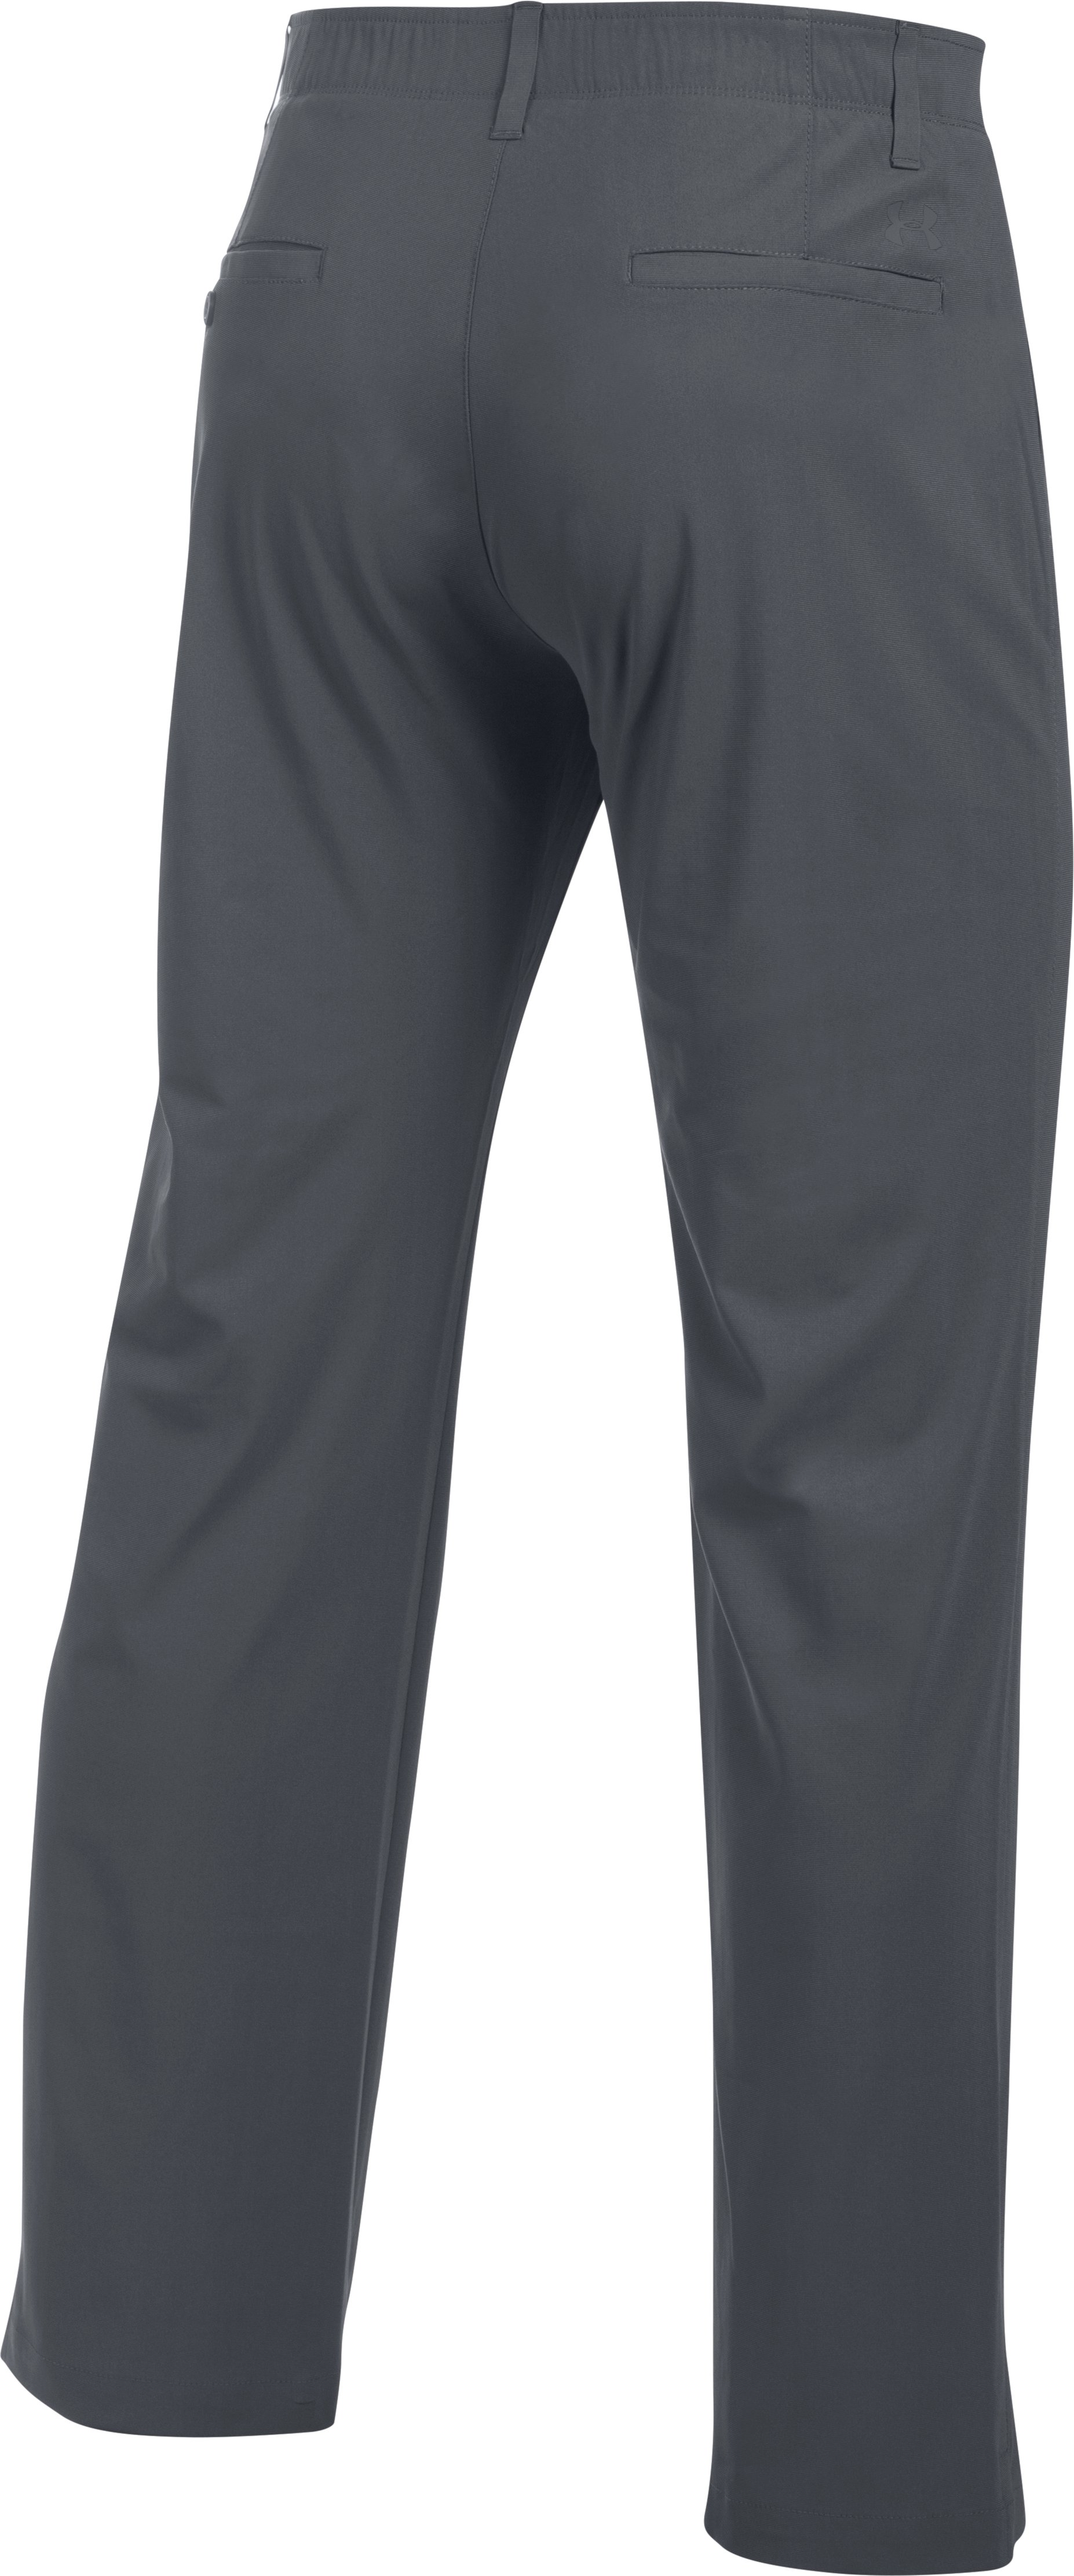 Men's UA Threadborne Tour Pants, RHINO GRAY, undefined